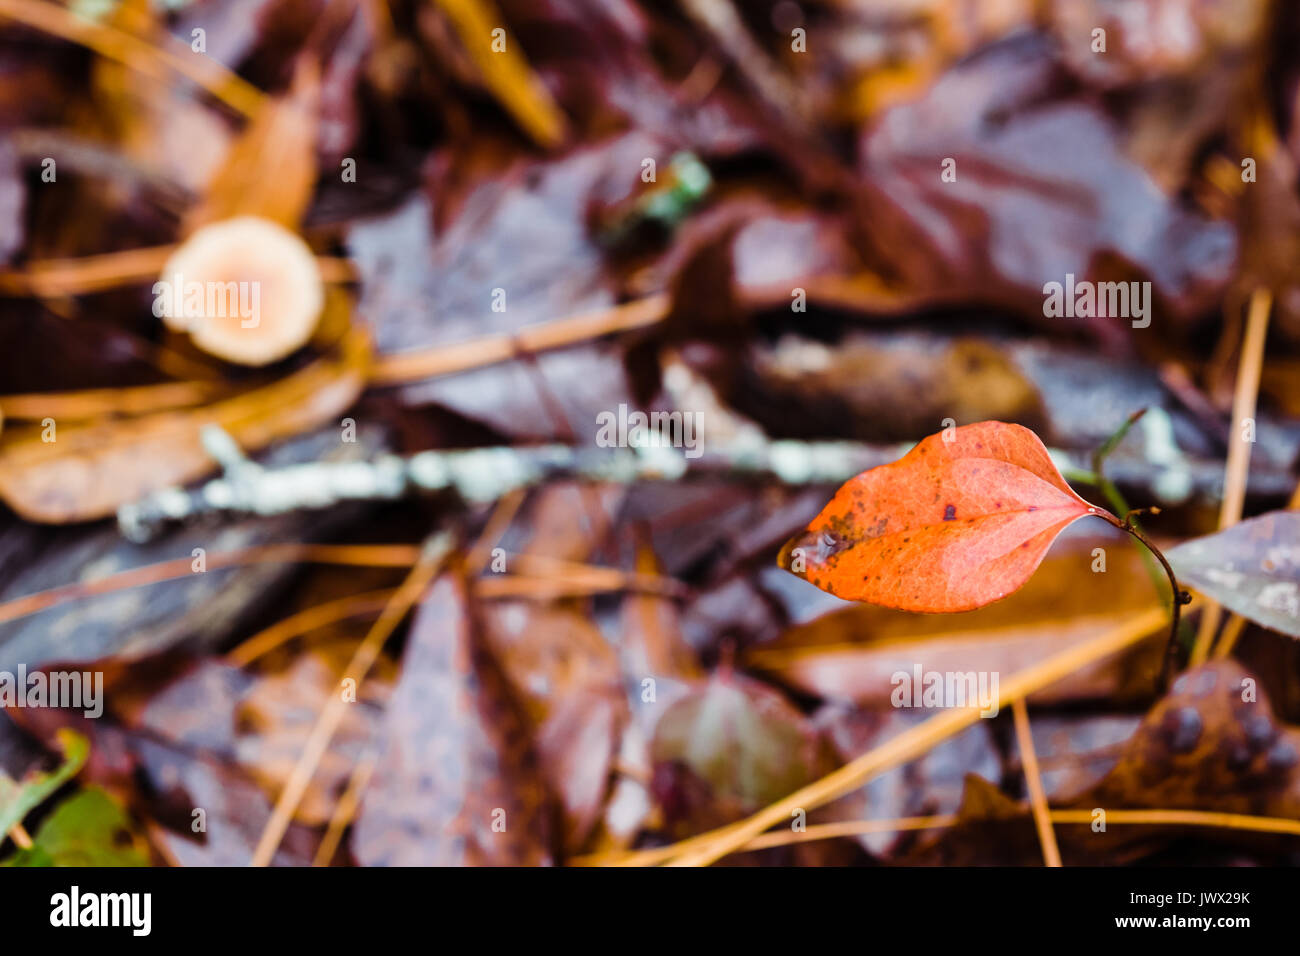 Shallow depth of field with focus on a turning leaf on the forest floor after an autumn rain. Fallen dead leaves - Stock Image